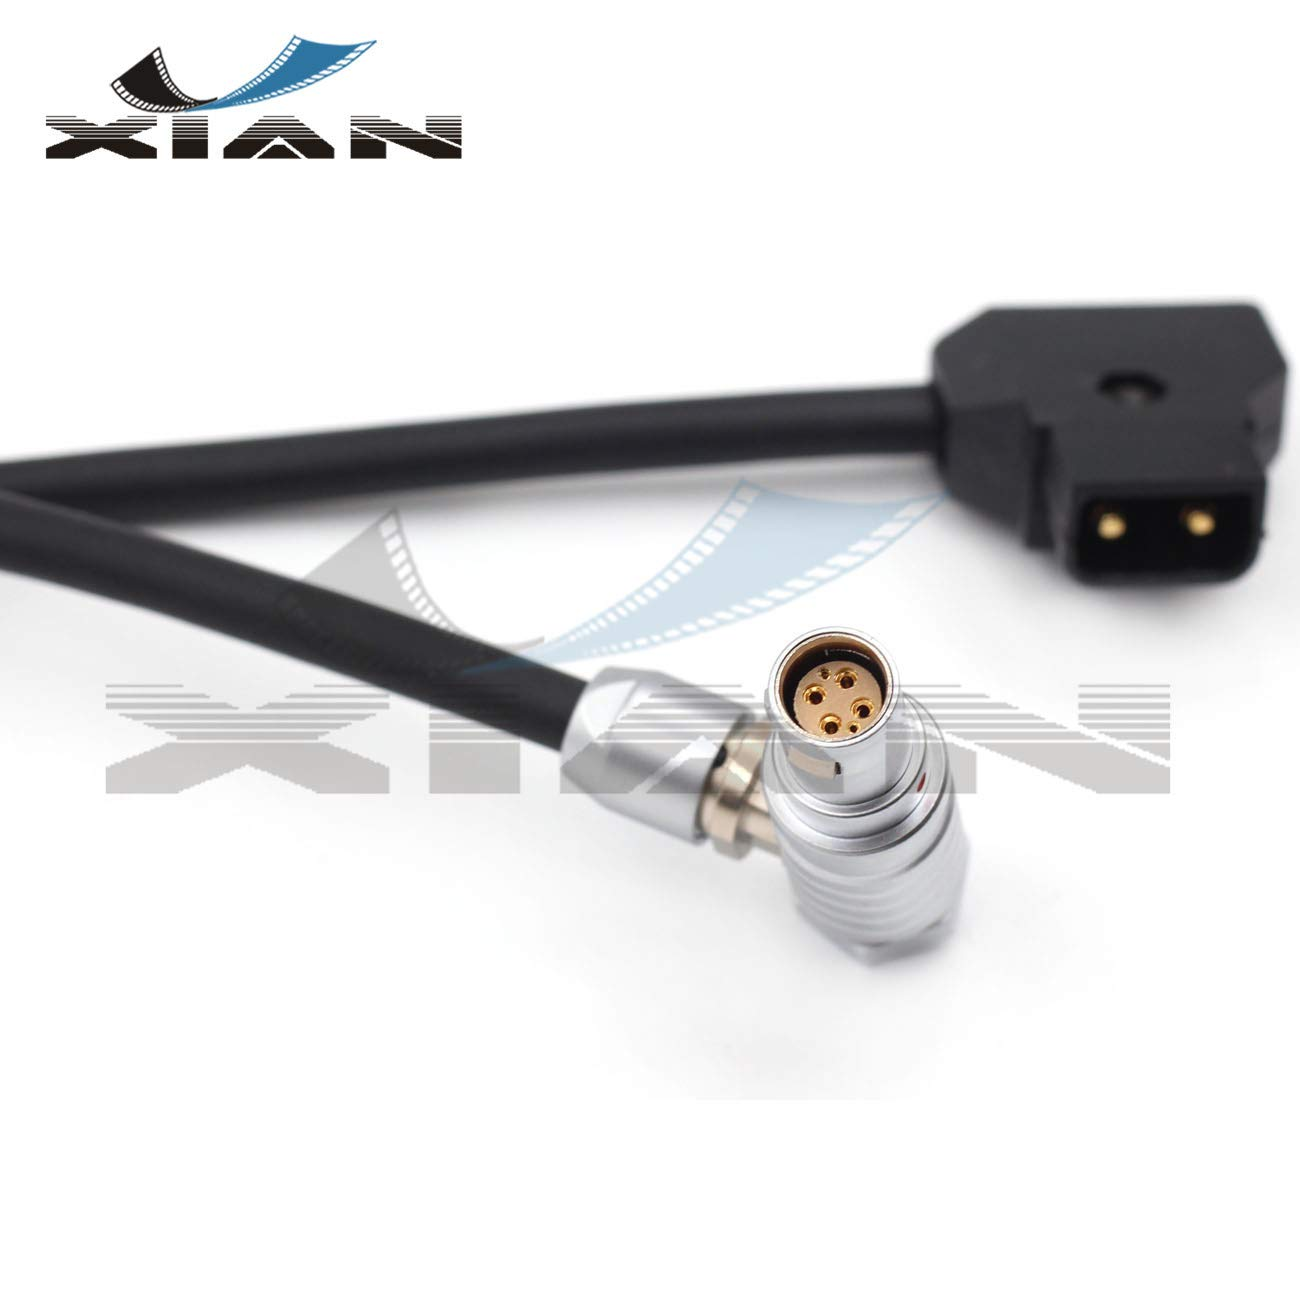 Y'XIAN Red Scarlet Camera Power Cable,D-Tap to 1B 6pin Power Cable for Red Scarlet & Epic Camera